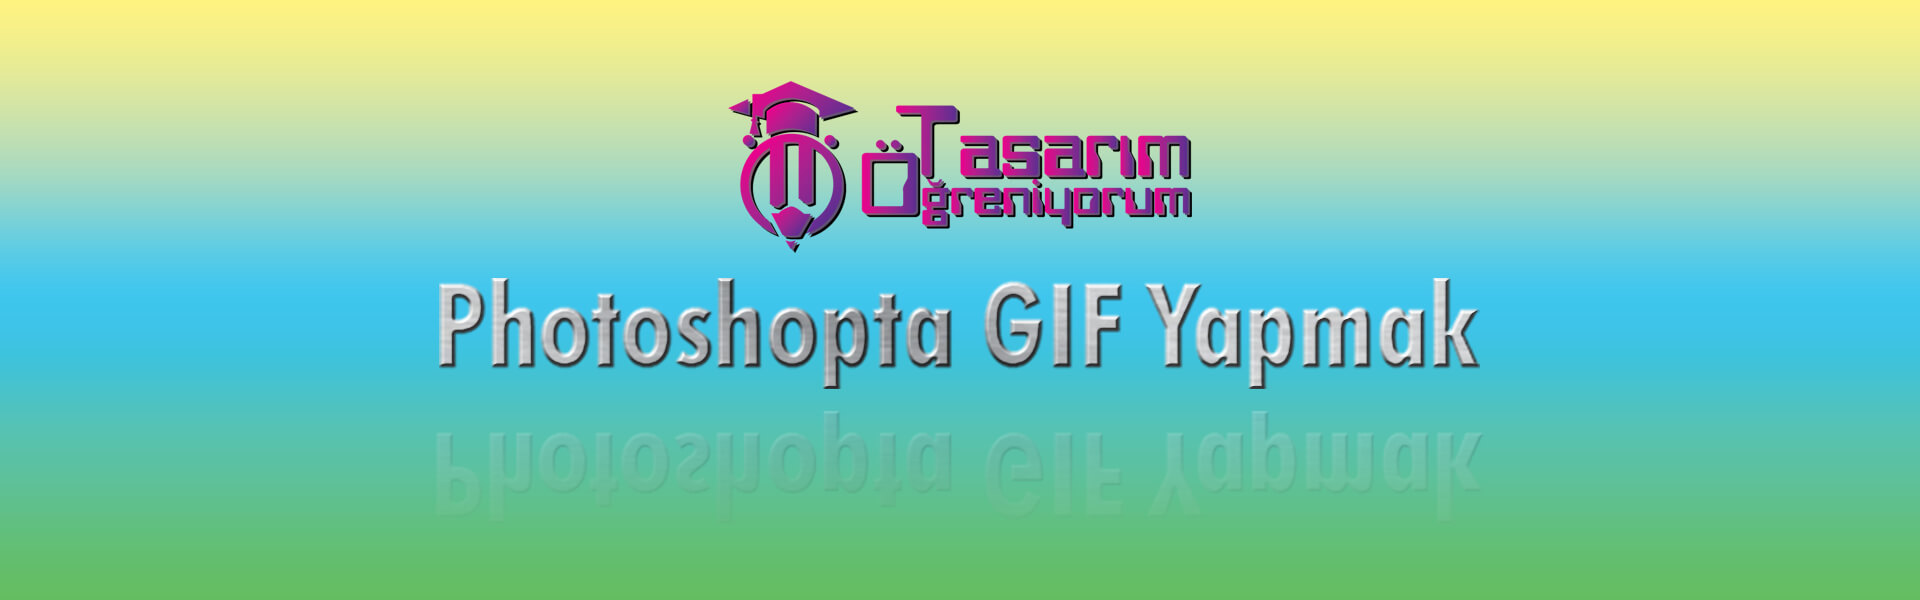 Photo of Photoshop'da GIF Yapmak